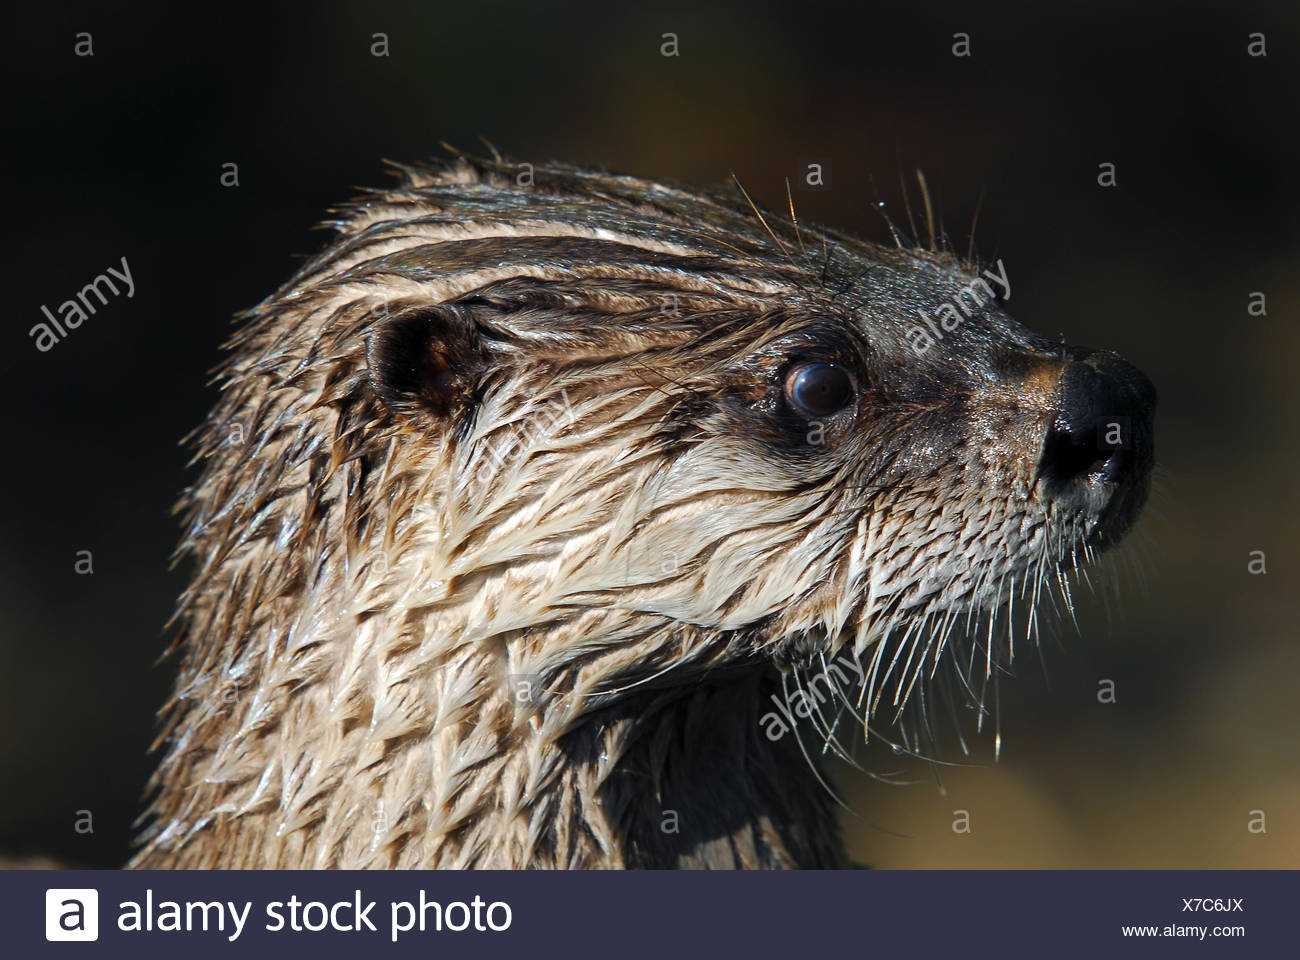 Close-up portrait of a wet Northern River Otter - Stock Image